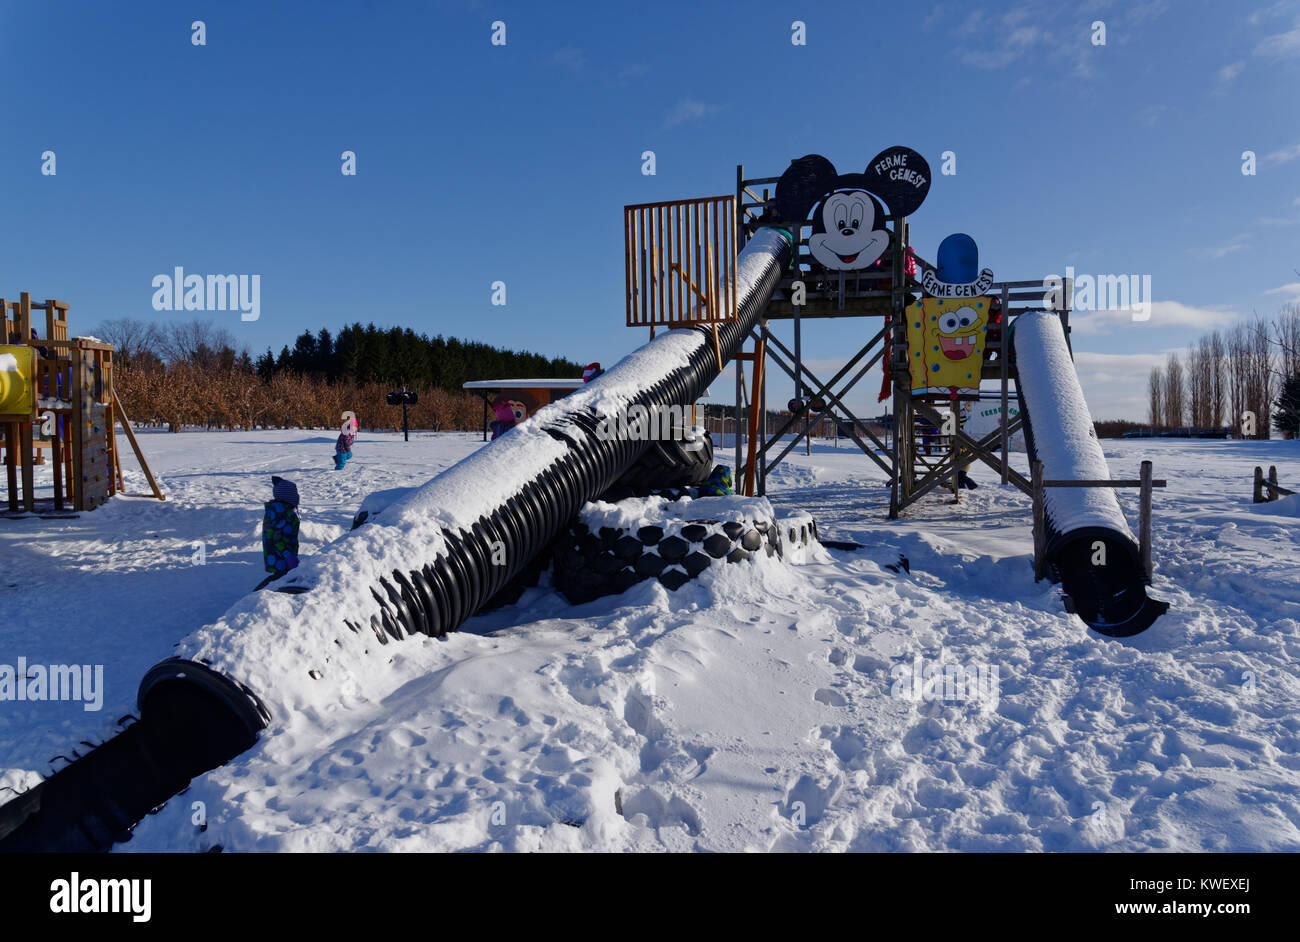 A slide in a playground in Quebec inwinter - Stock Image